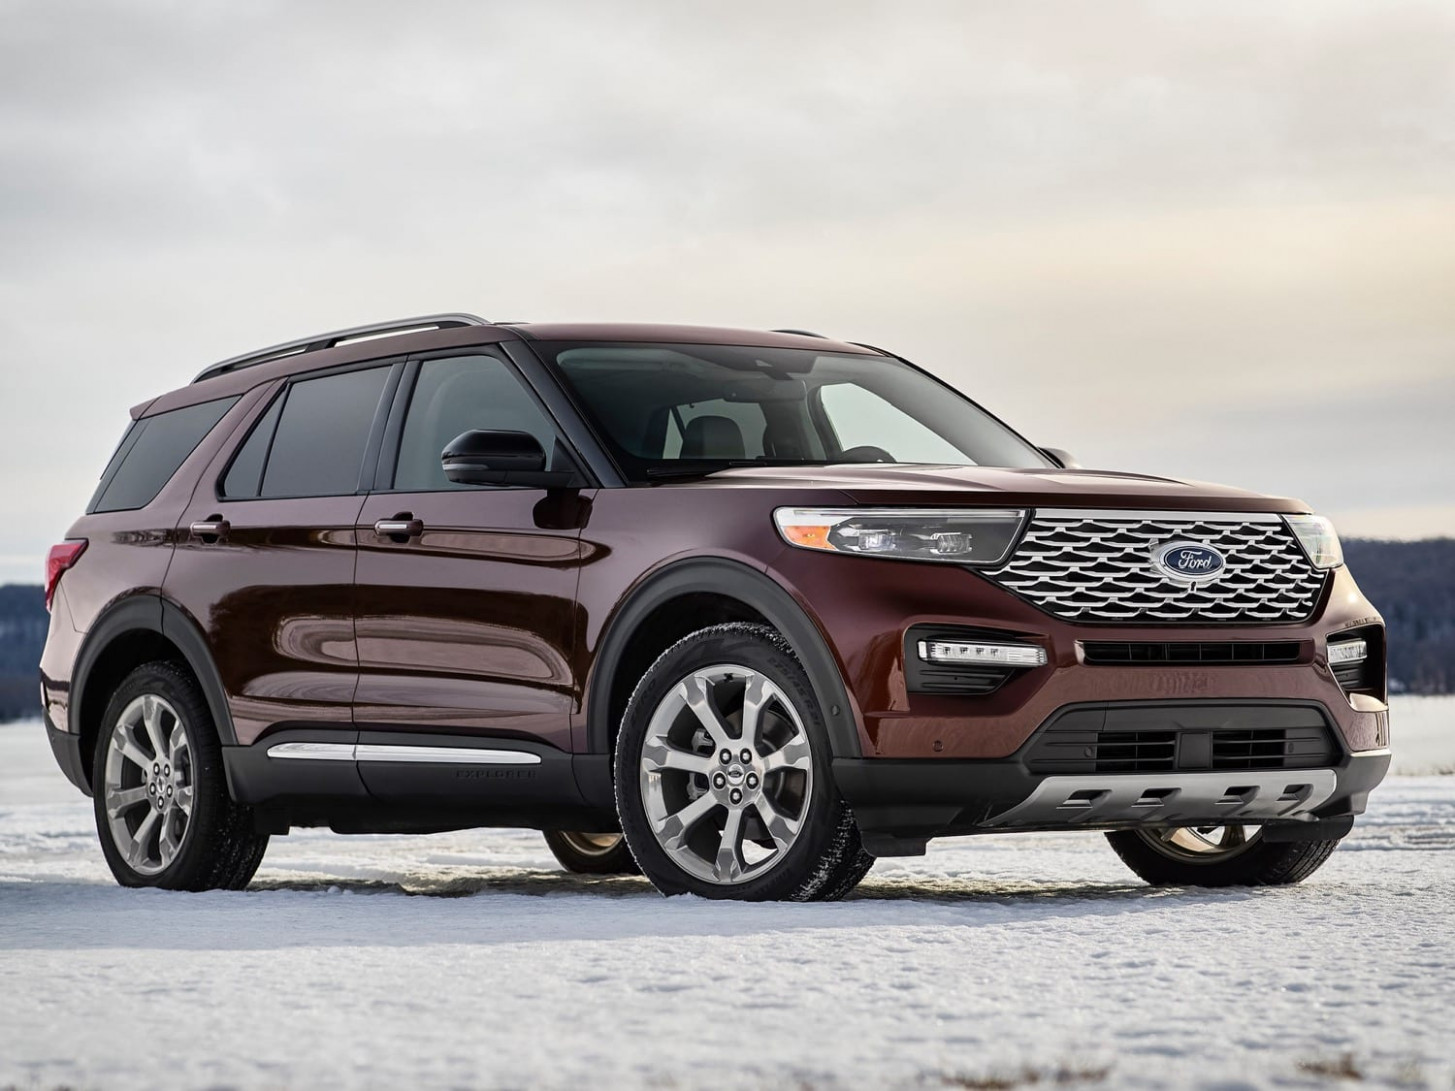 Price and Review When Does The 2022 Ford Explorer Come Out